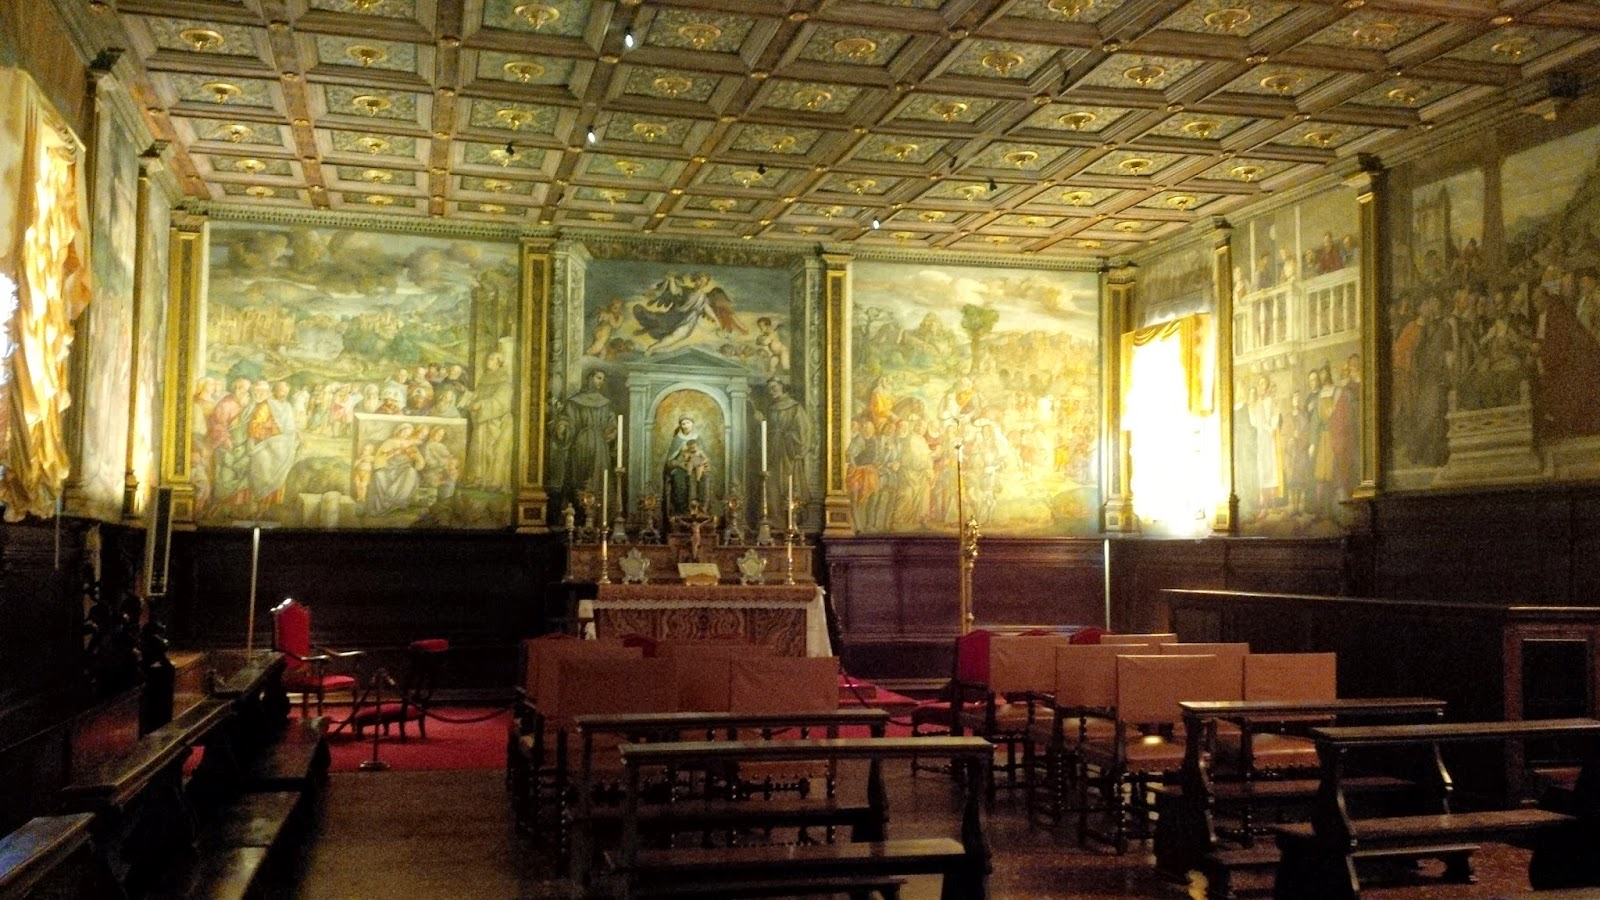 Inside St. Anthony's School in Padua